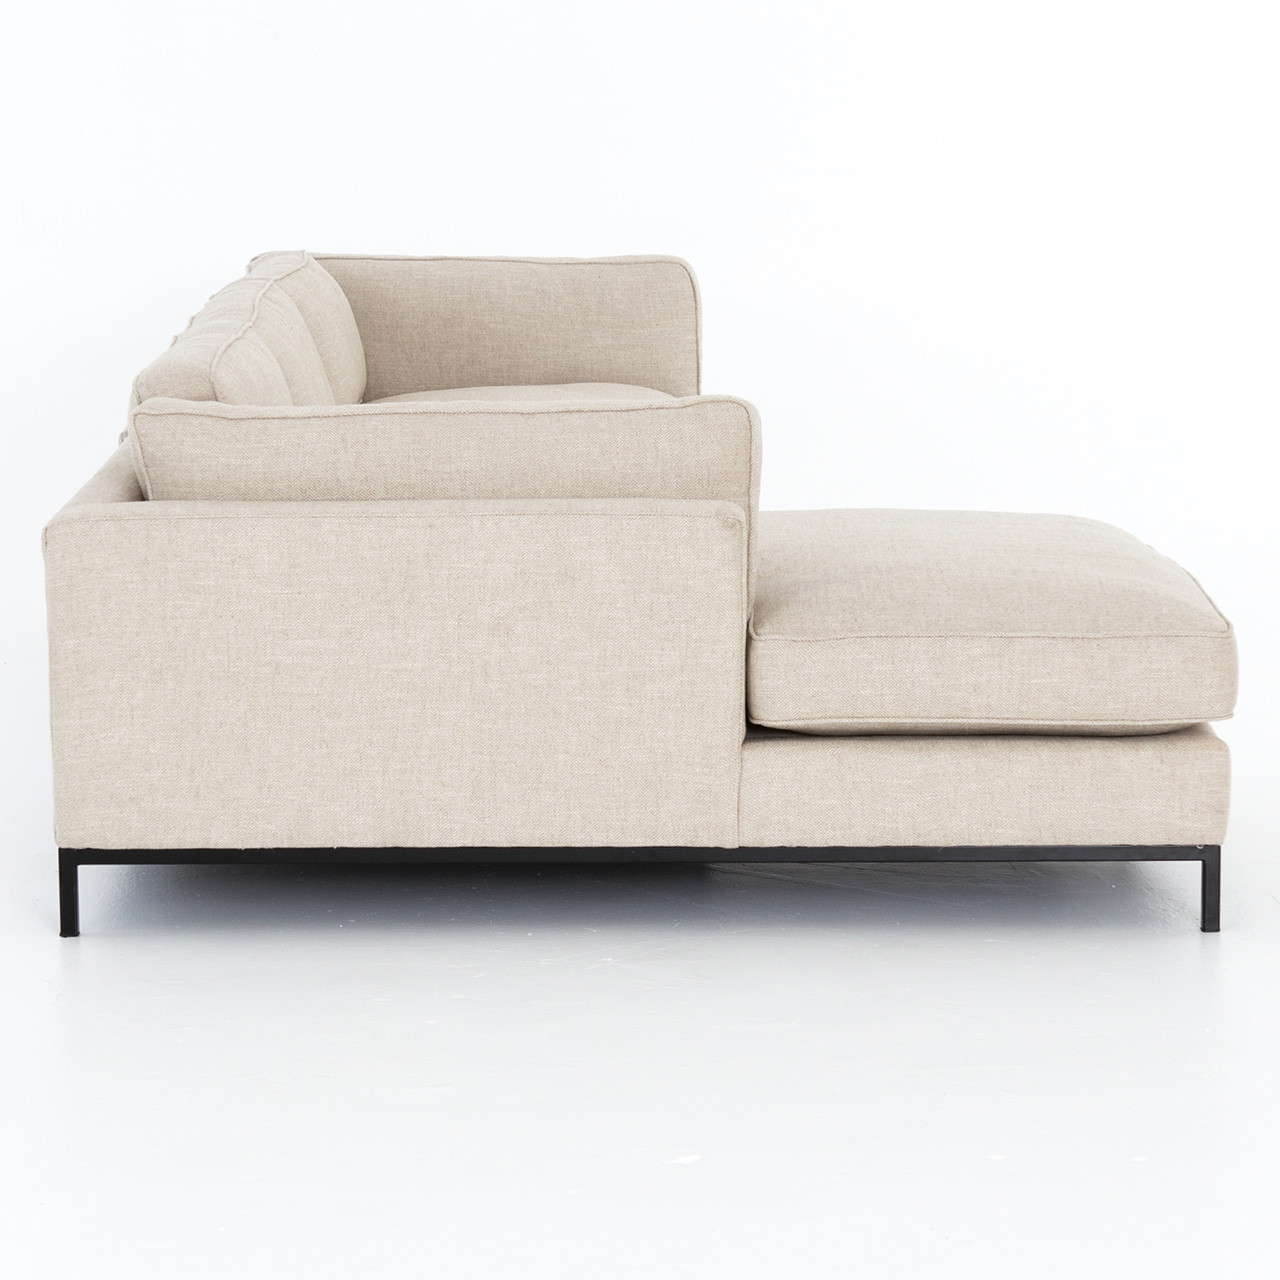 Adriana 2-Piece Chaise Sectional